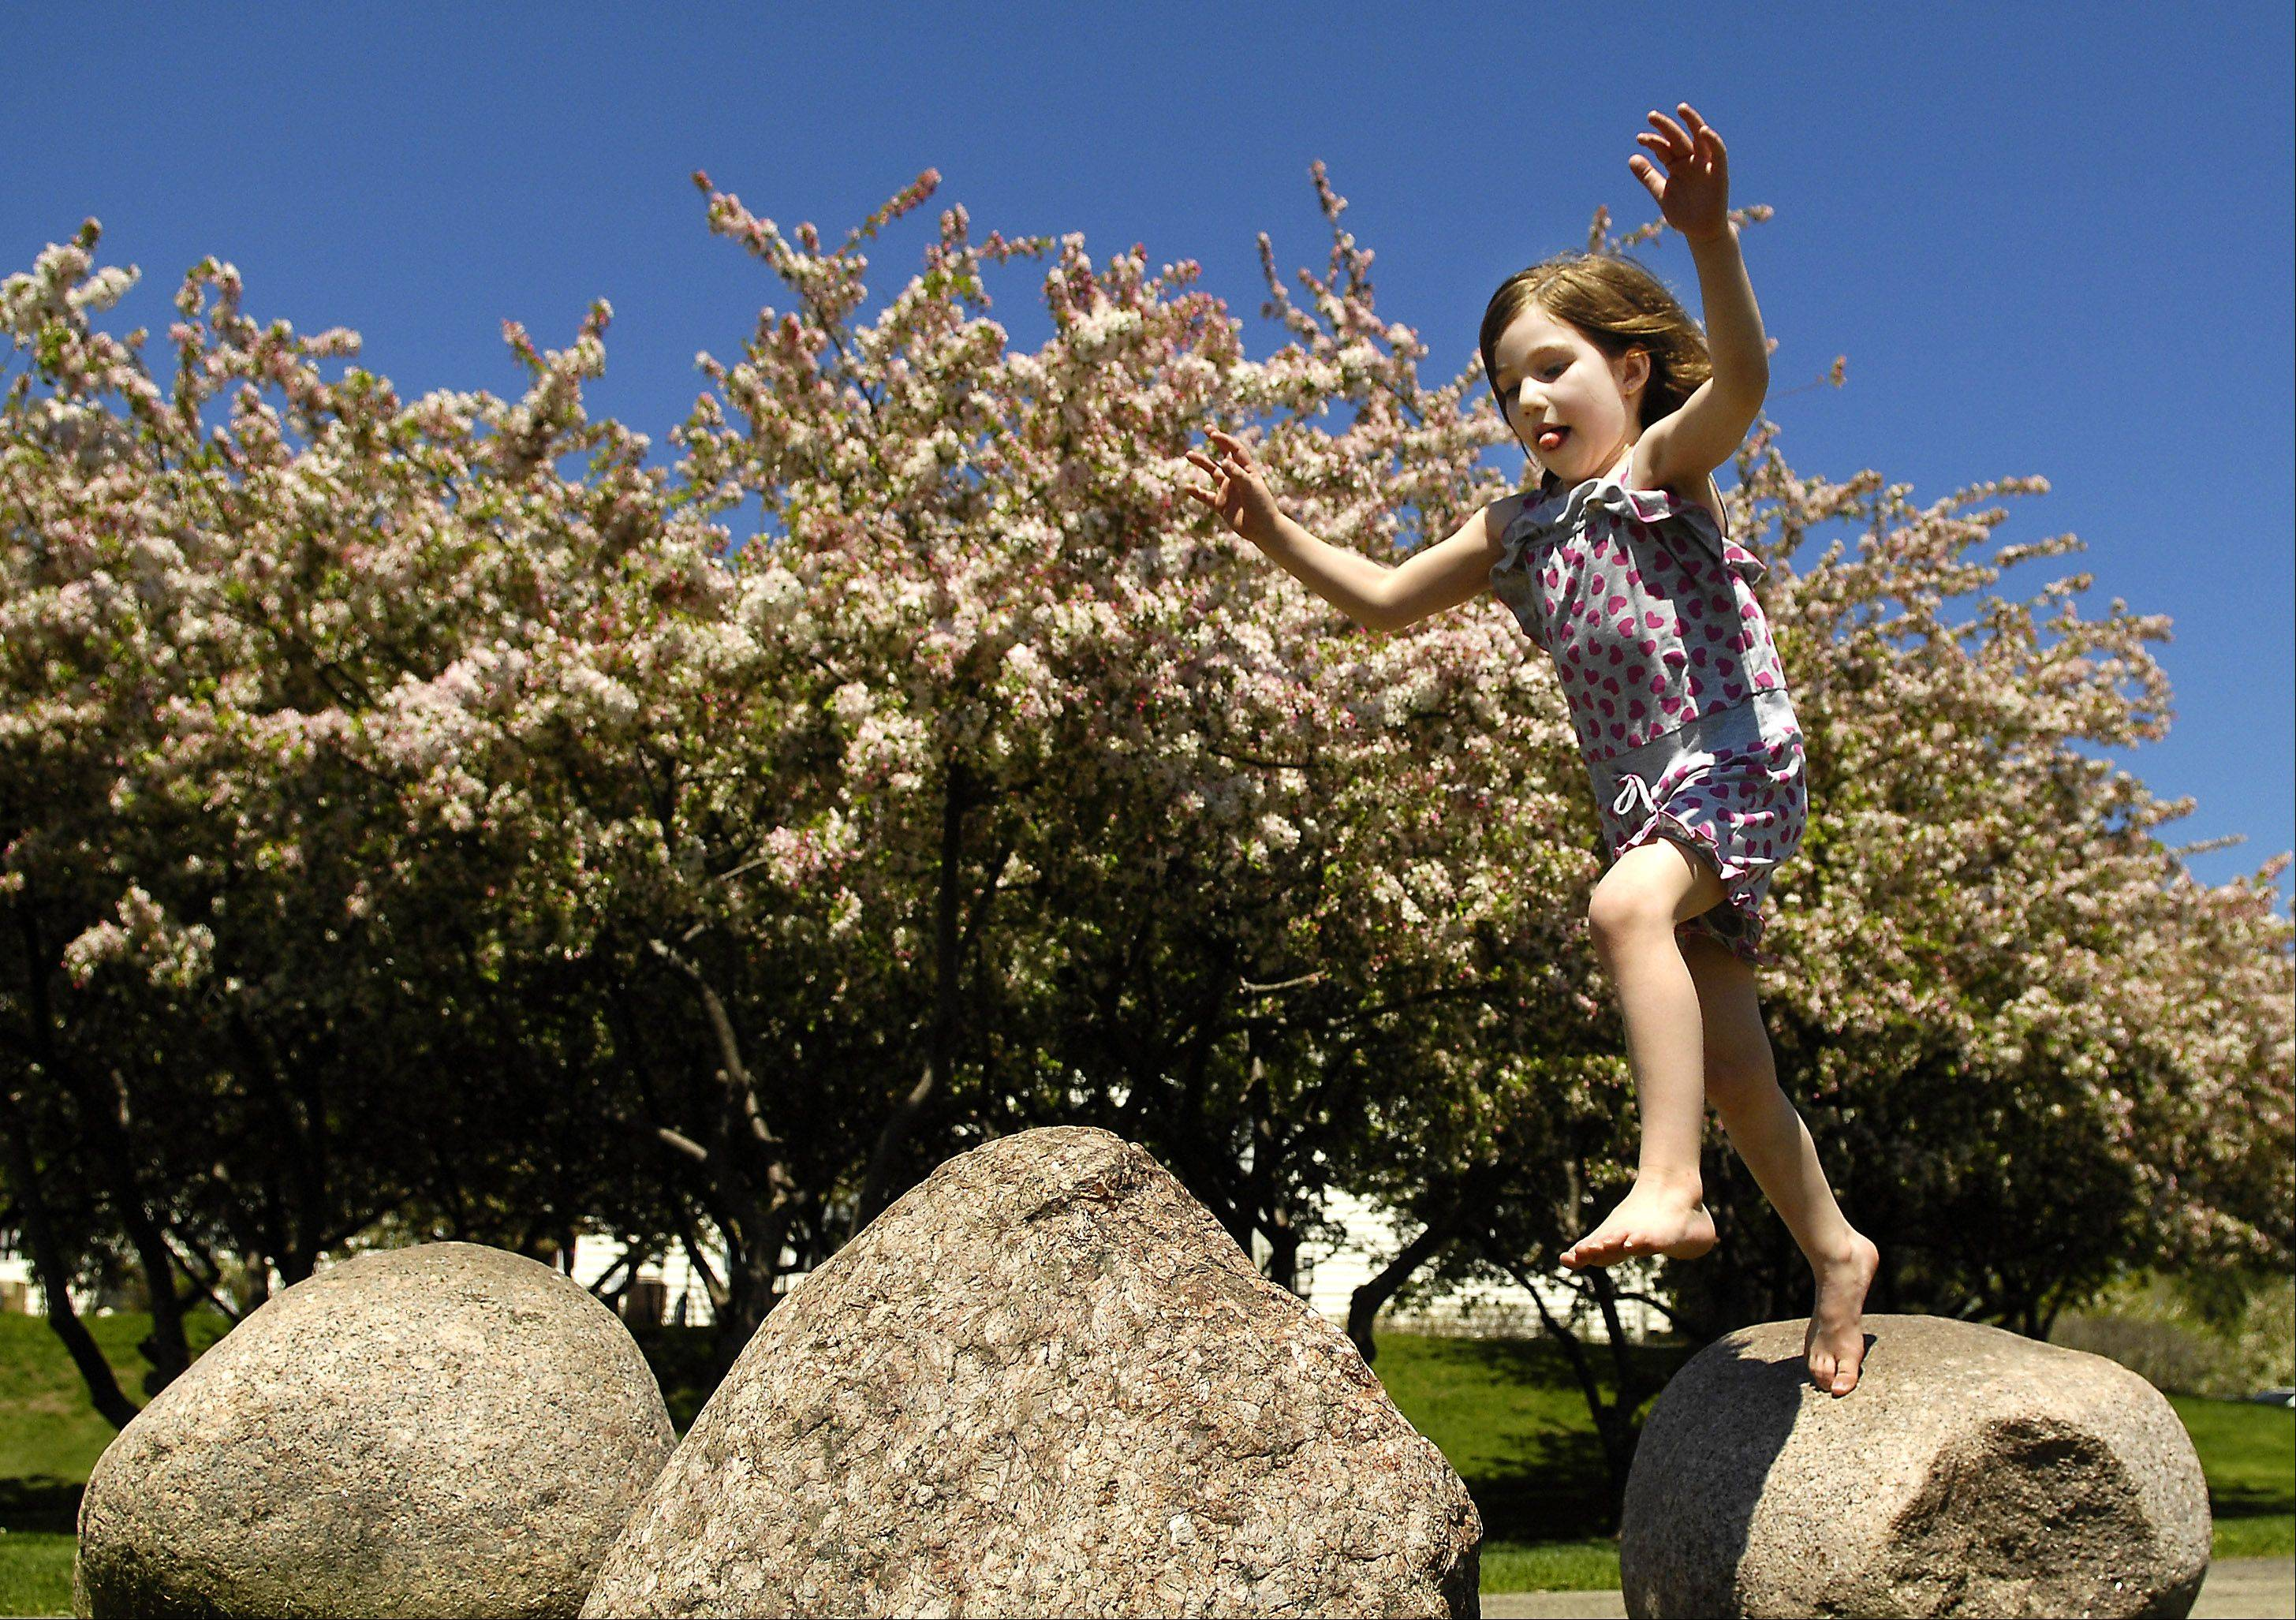 Amelia Schreier, 5, of Crystal Lake, jumps from rock to rock while playing at Ken Carpenter Park in Lake in the Hills Tuesday. She eventually had to quit when the sun made the rocks too hot for her.